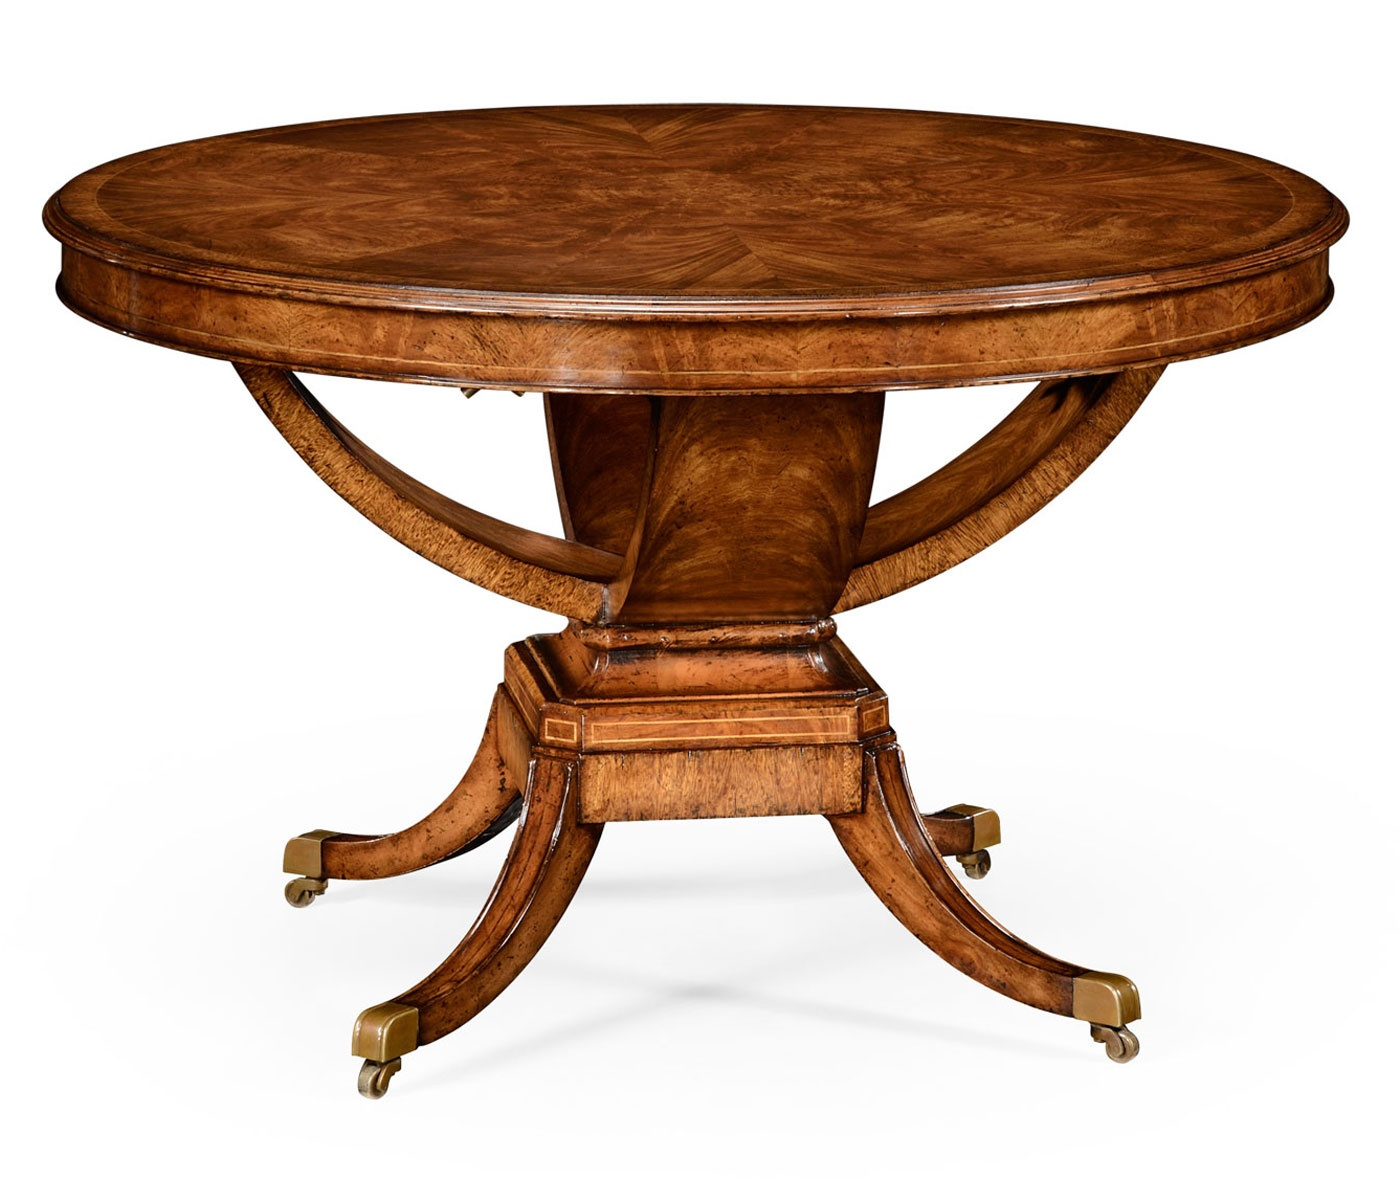 6 seater round dining table walnut swanky interiors. Black Bedroom Furniture Sets. Home Design Ideas